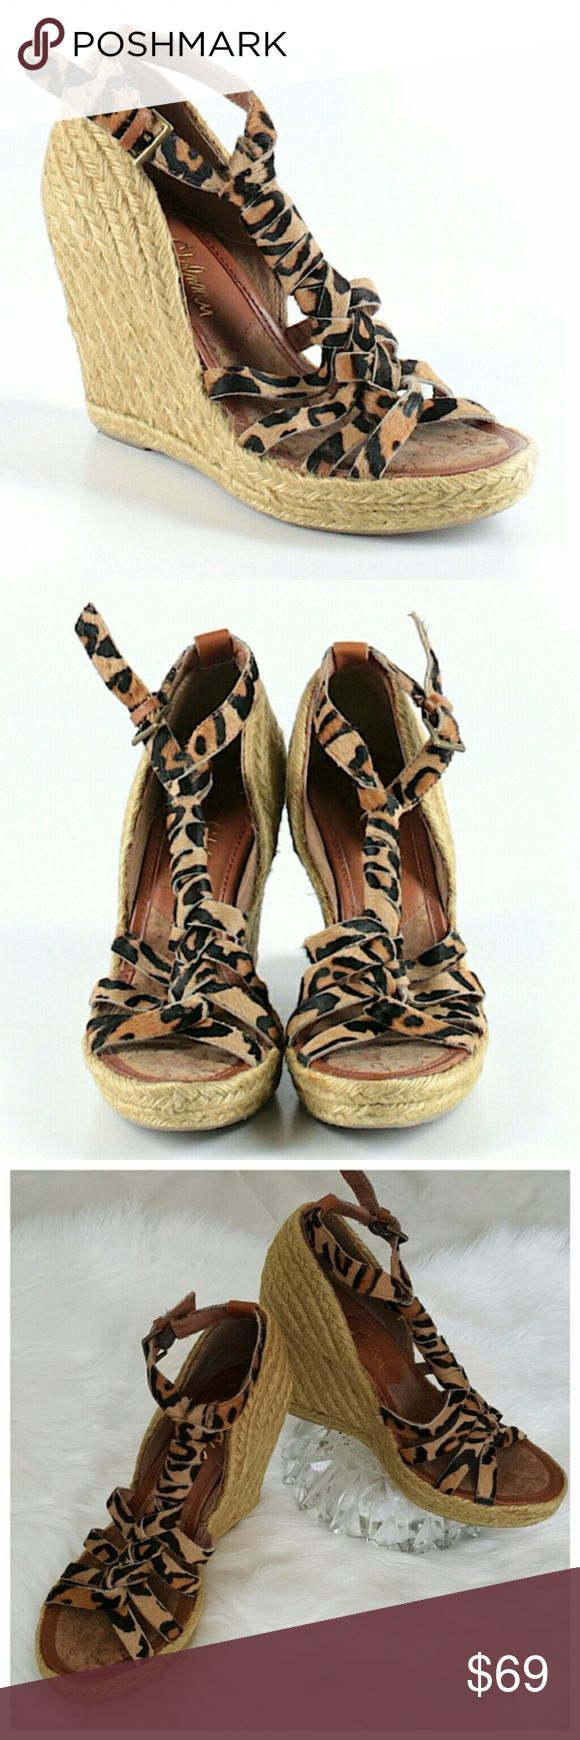 """Sam Edelman Espadrille Leopard 'Leroy' Wedges 6M SAM EDELMAN """"Leroy"""" Leopard Print Calf Hair Raffia Espadrille Wedges. Super cute high wedges with animal print straps.   Details: open toe, leather braided t-strap, adjustable buckle ankle, woven raffia-wrapped platform wedges. Approximately 4"""" heel with 1 ¼"""" platform.  Color: Nude – Leopard print Size: 6M (medium width) Condition: Very good condition with normal, minimal wear. Sam Edelman Shoes Espadrilles #WedgeHairstylesMom"""